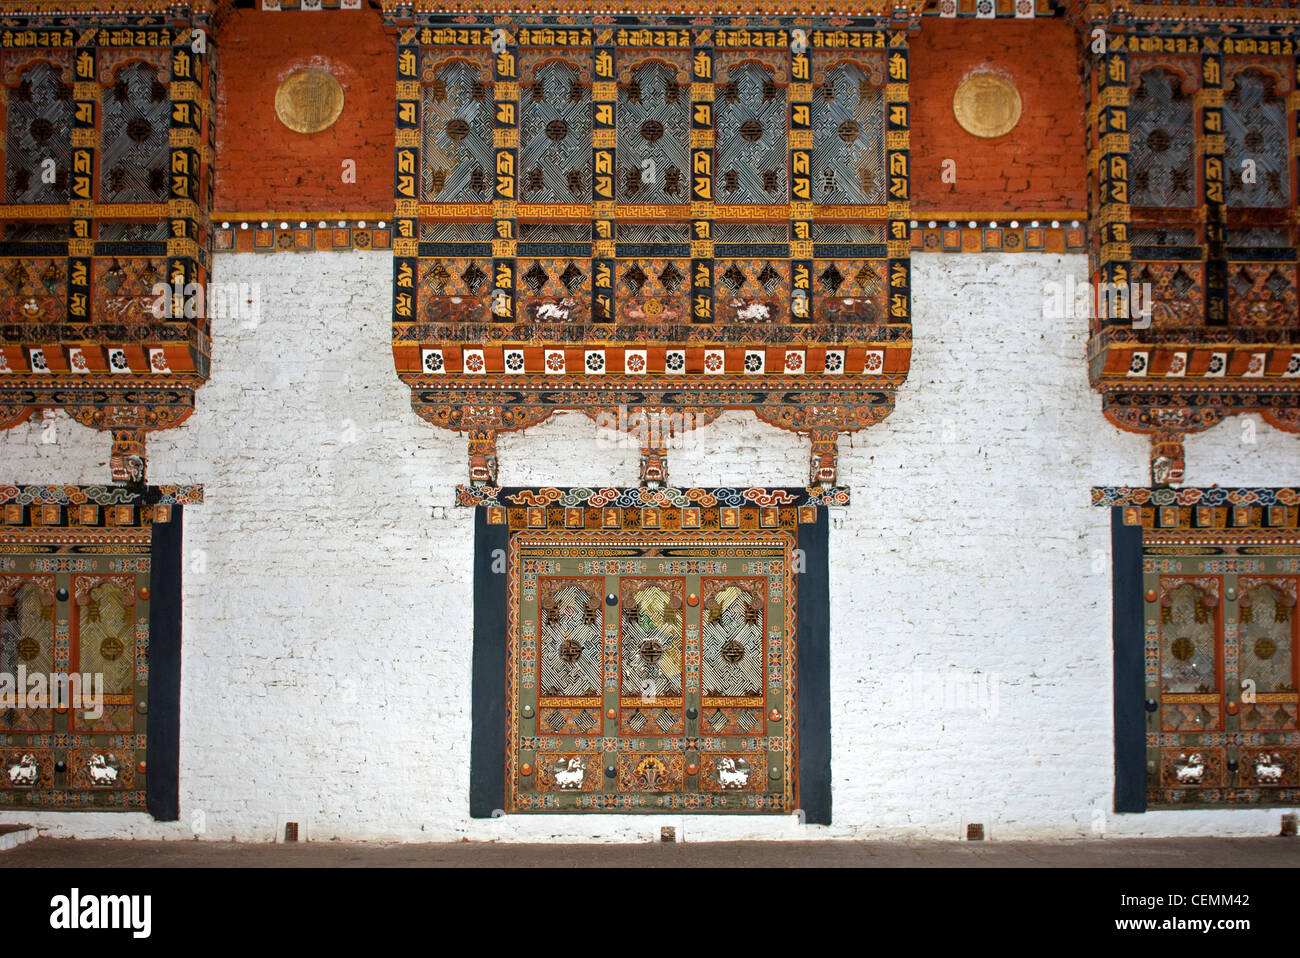 ornate window in typical Bhutanese architecture in the fortress Phunaka Dzong or Punthang Dechen Phodrang Dzong, - Stock Image